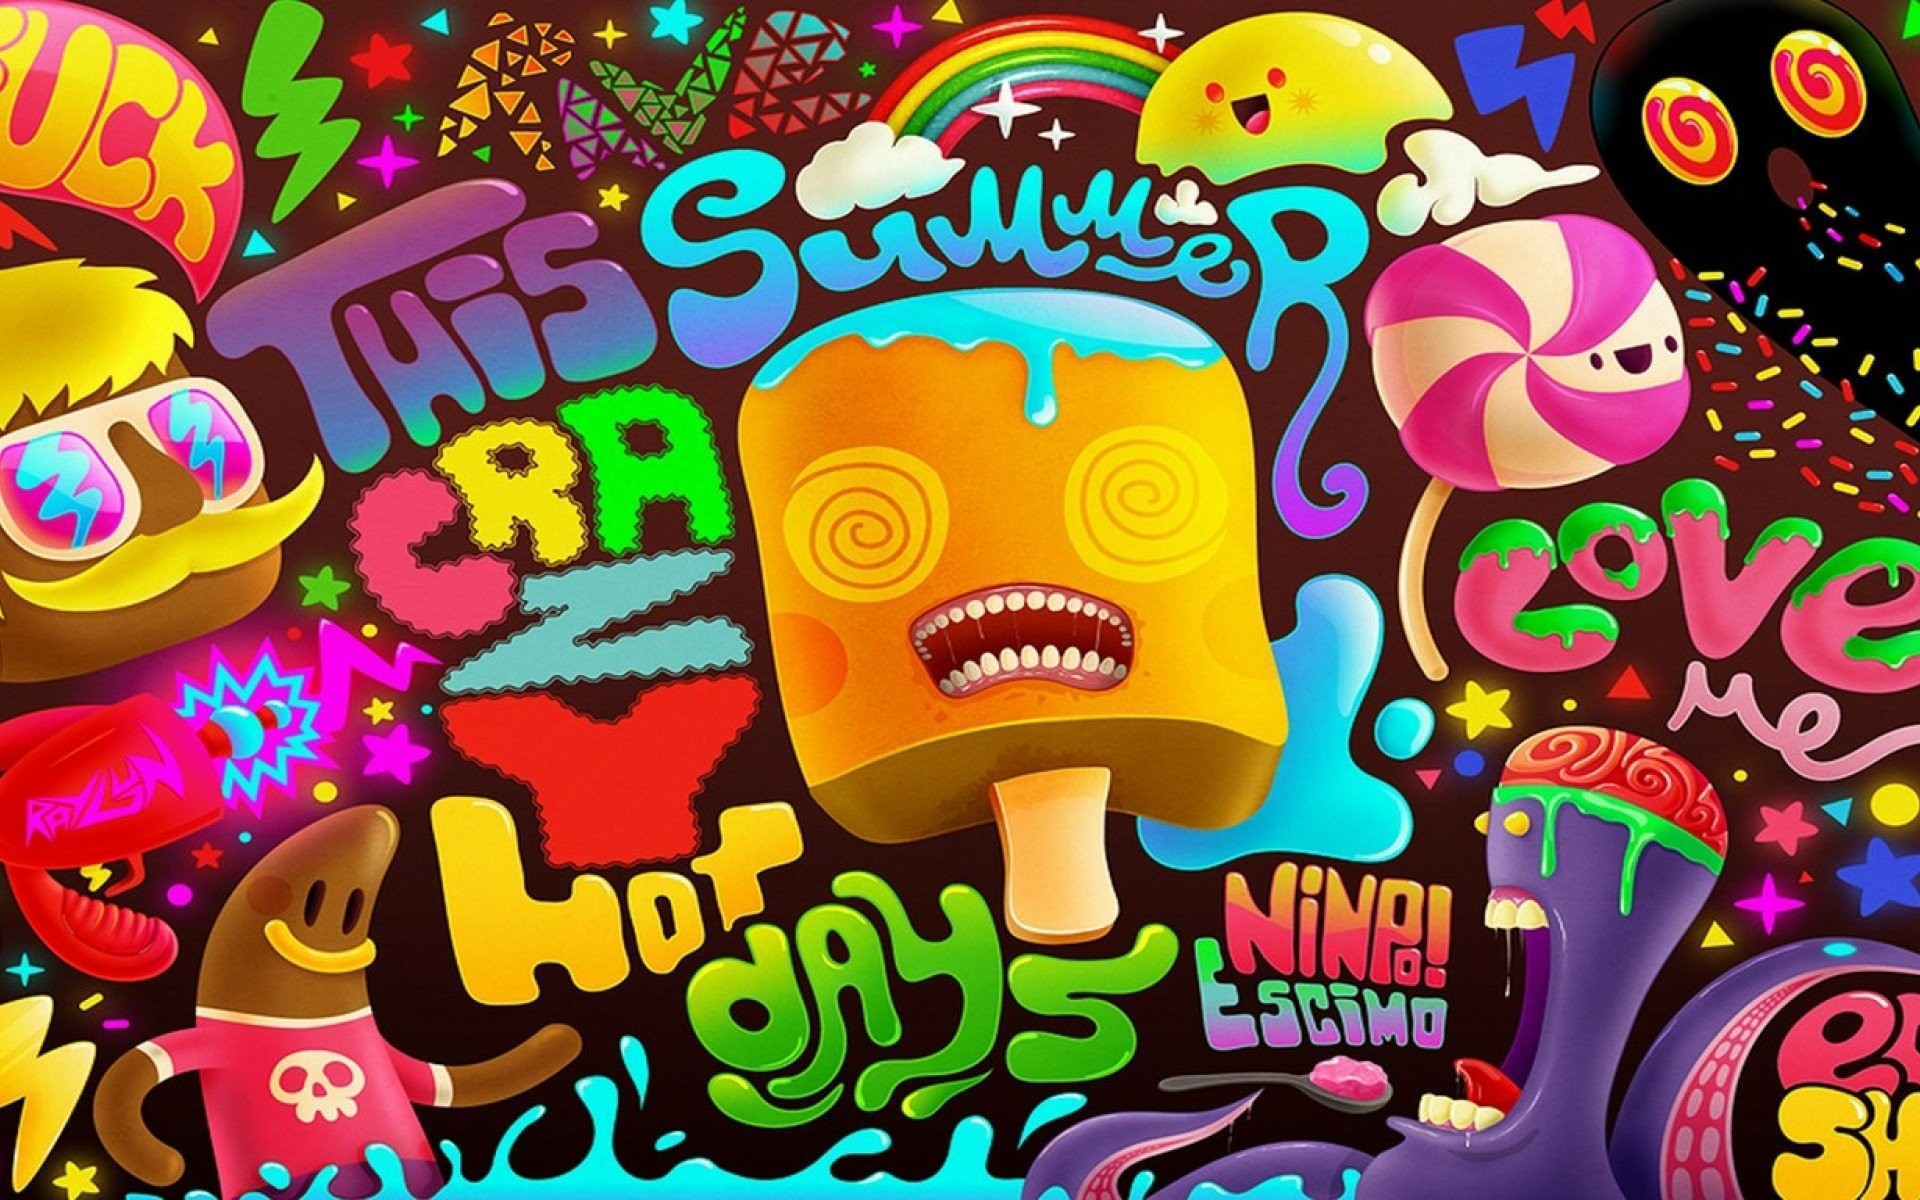 1920x1200 Psychedelic,Cat,Hipster,Glasses,Mustache. Psychedelic Facebook Cover  Wallpaper